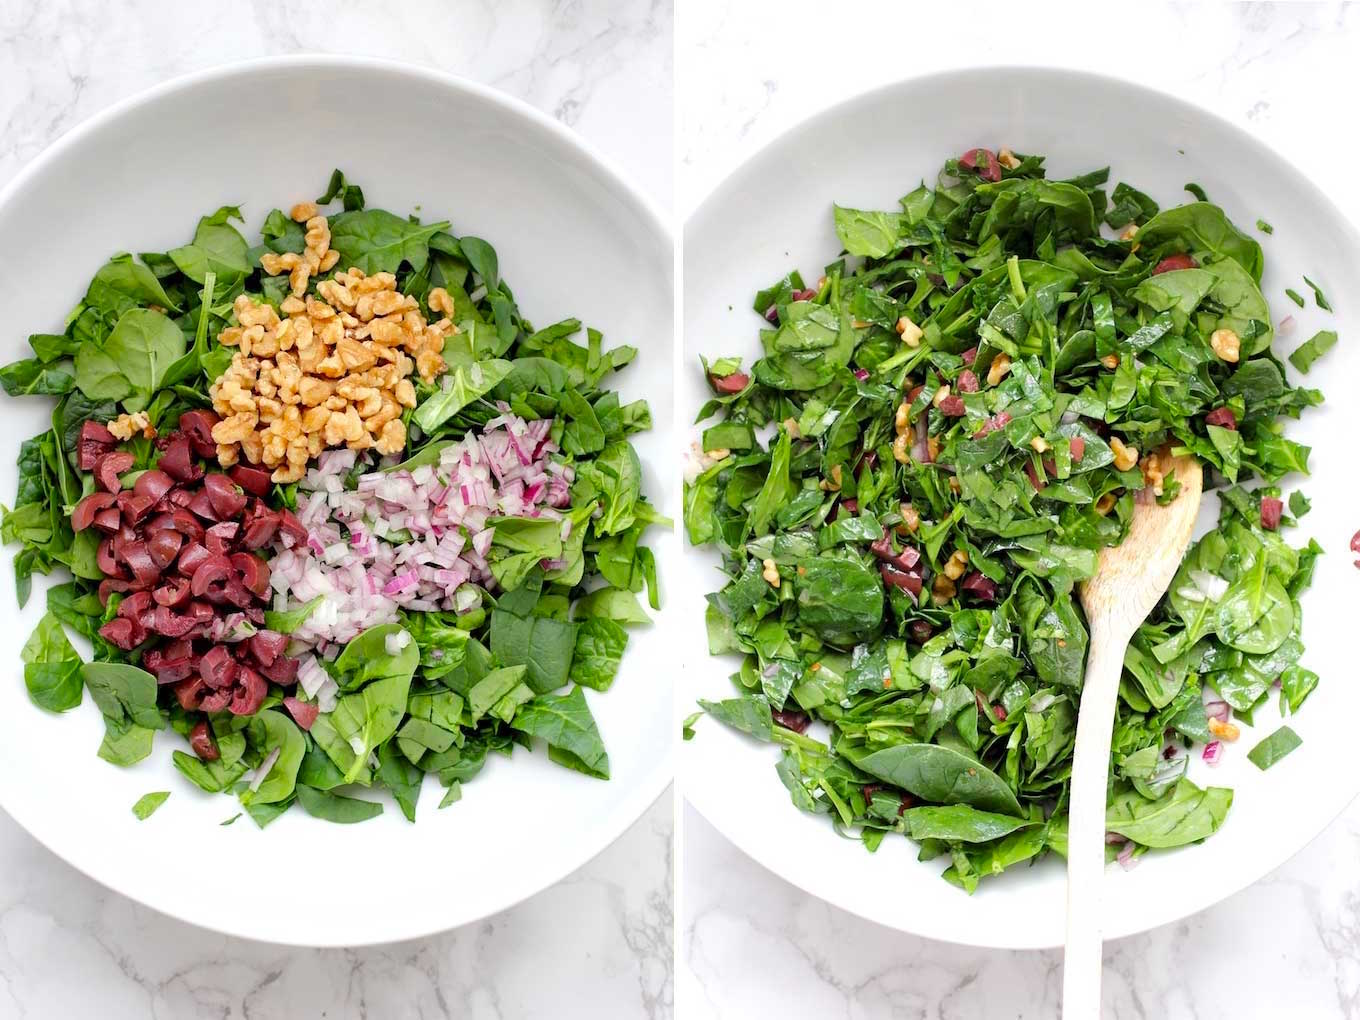 Side by side photo of spinach, olives, walnuts and red onion in a white bowl.